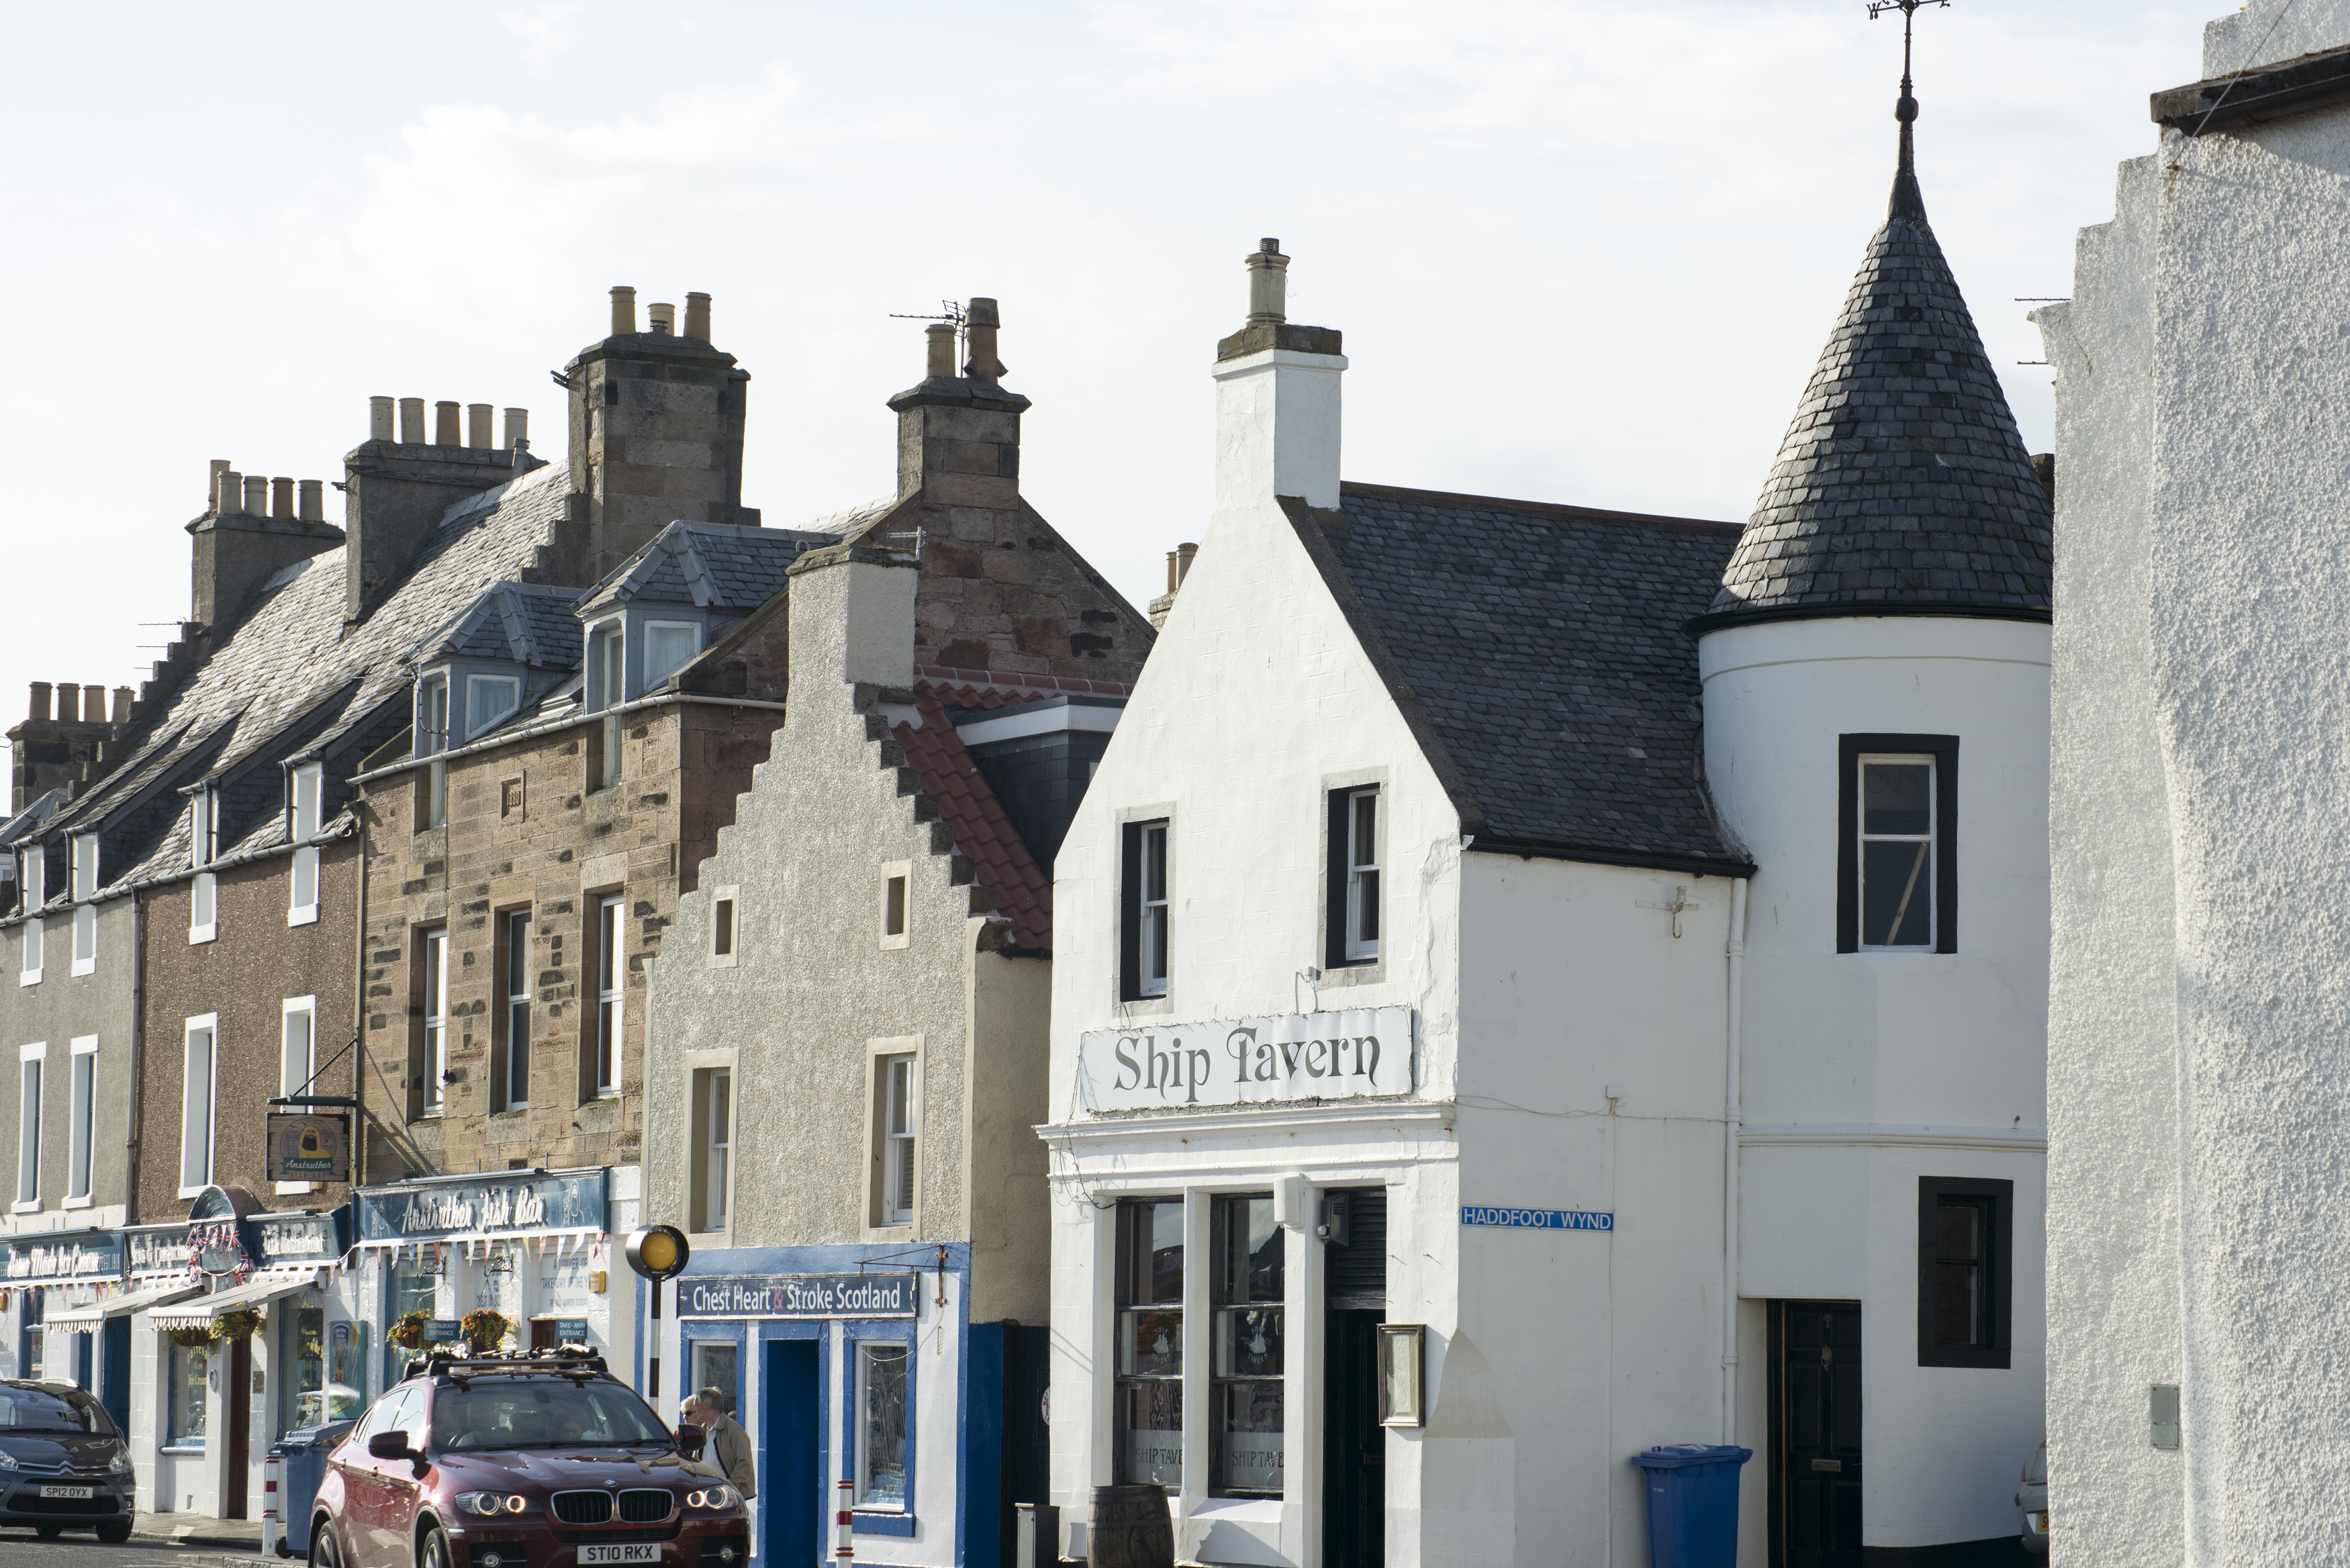 Cars parked in front of row of quaint traditional homes and storefronts in Anstruther, Scotland